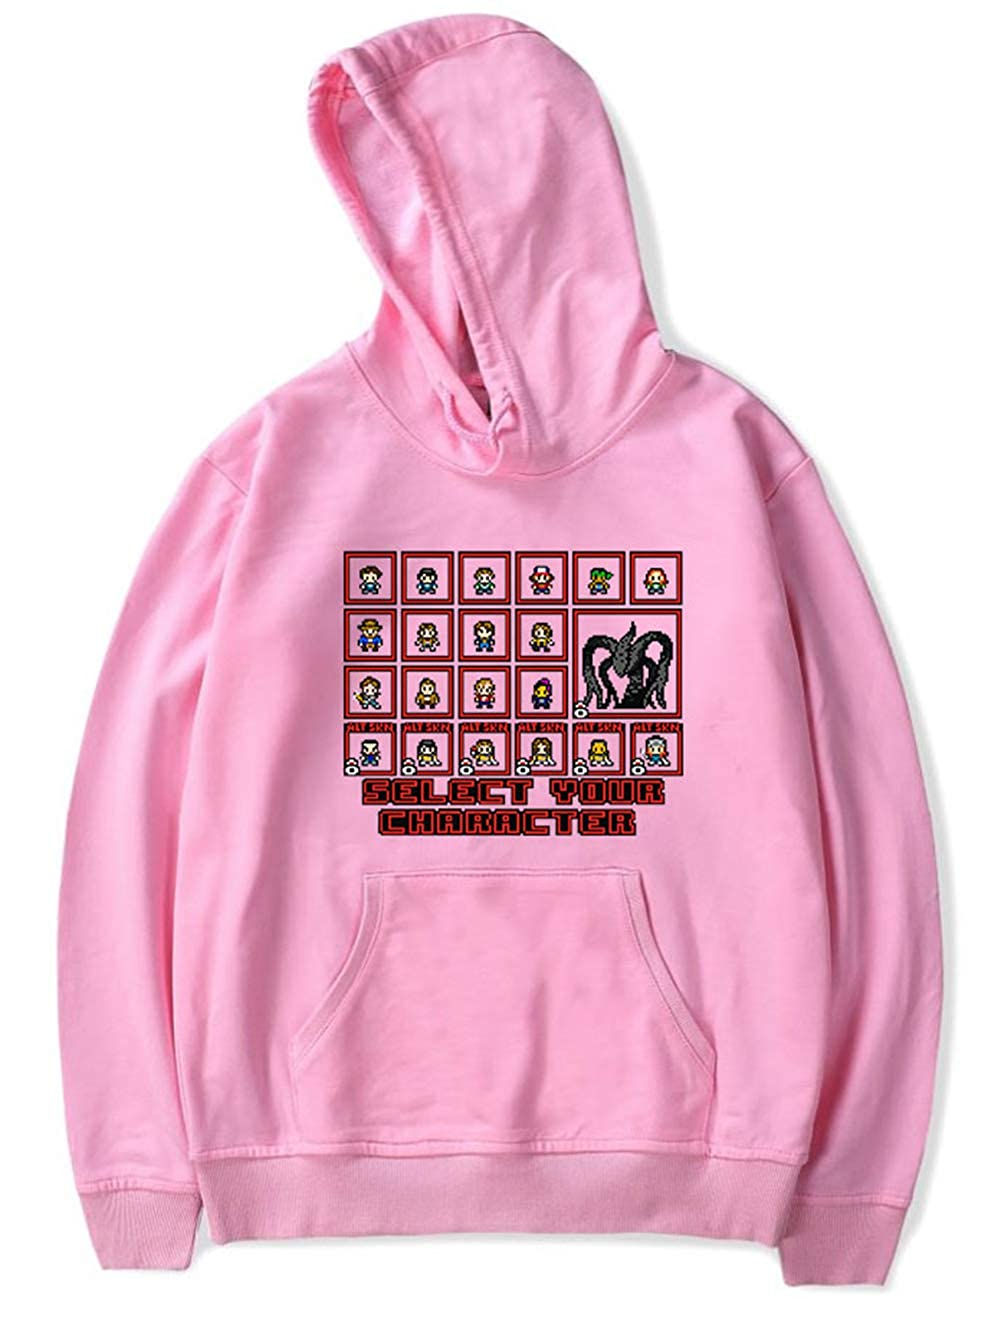 YIMIAO Unisexe 3D Printed Hoodies Automne Hiver Sweat-Shirts Stranger Things